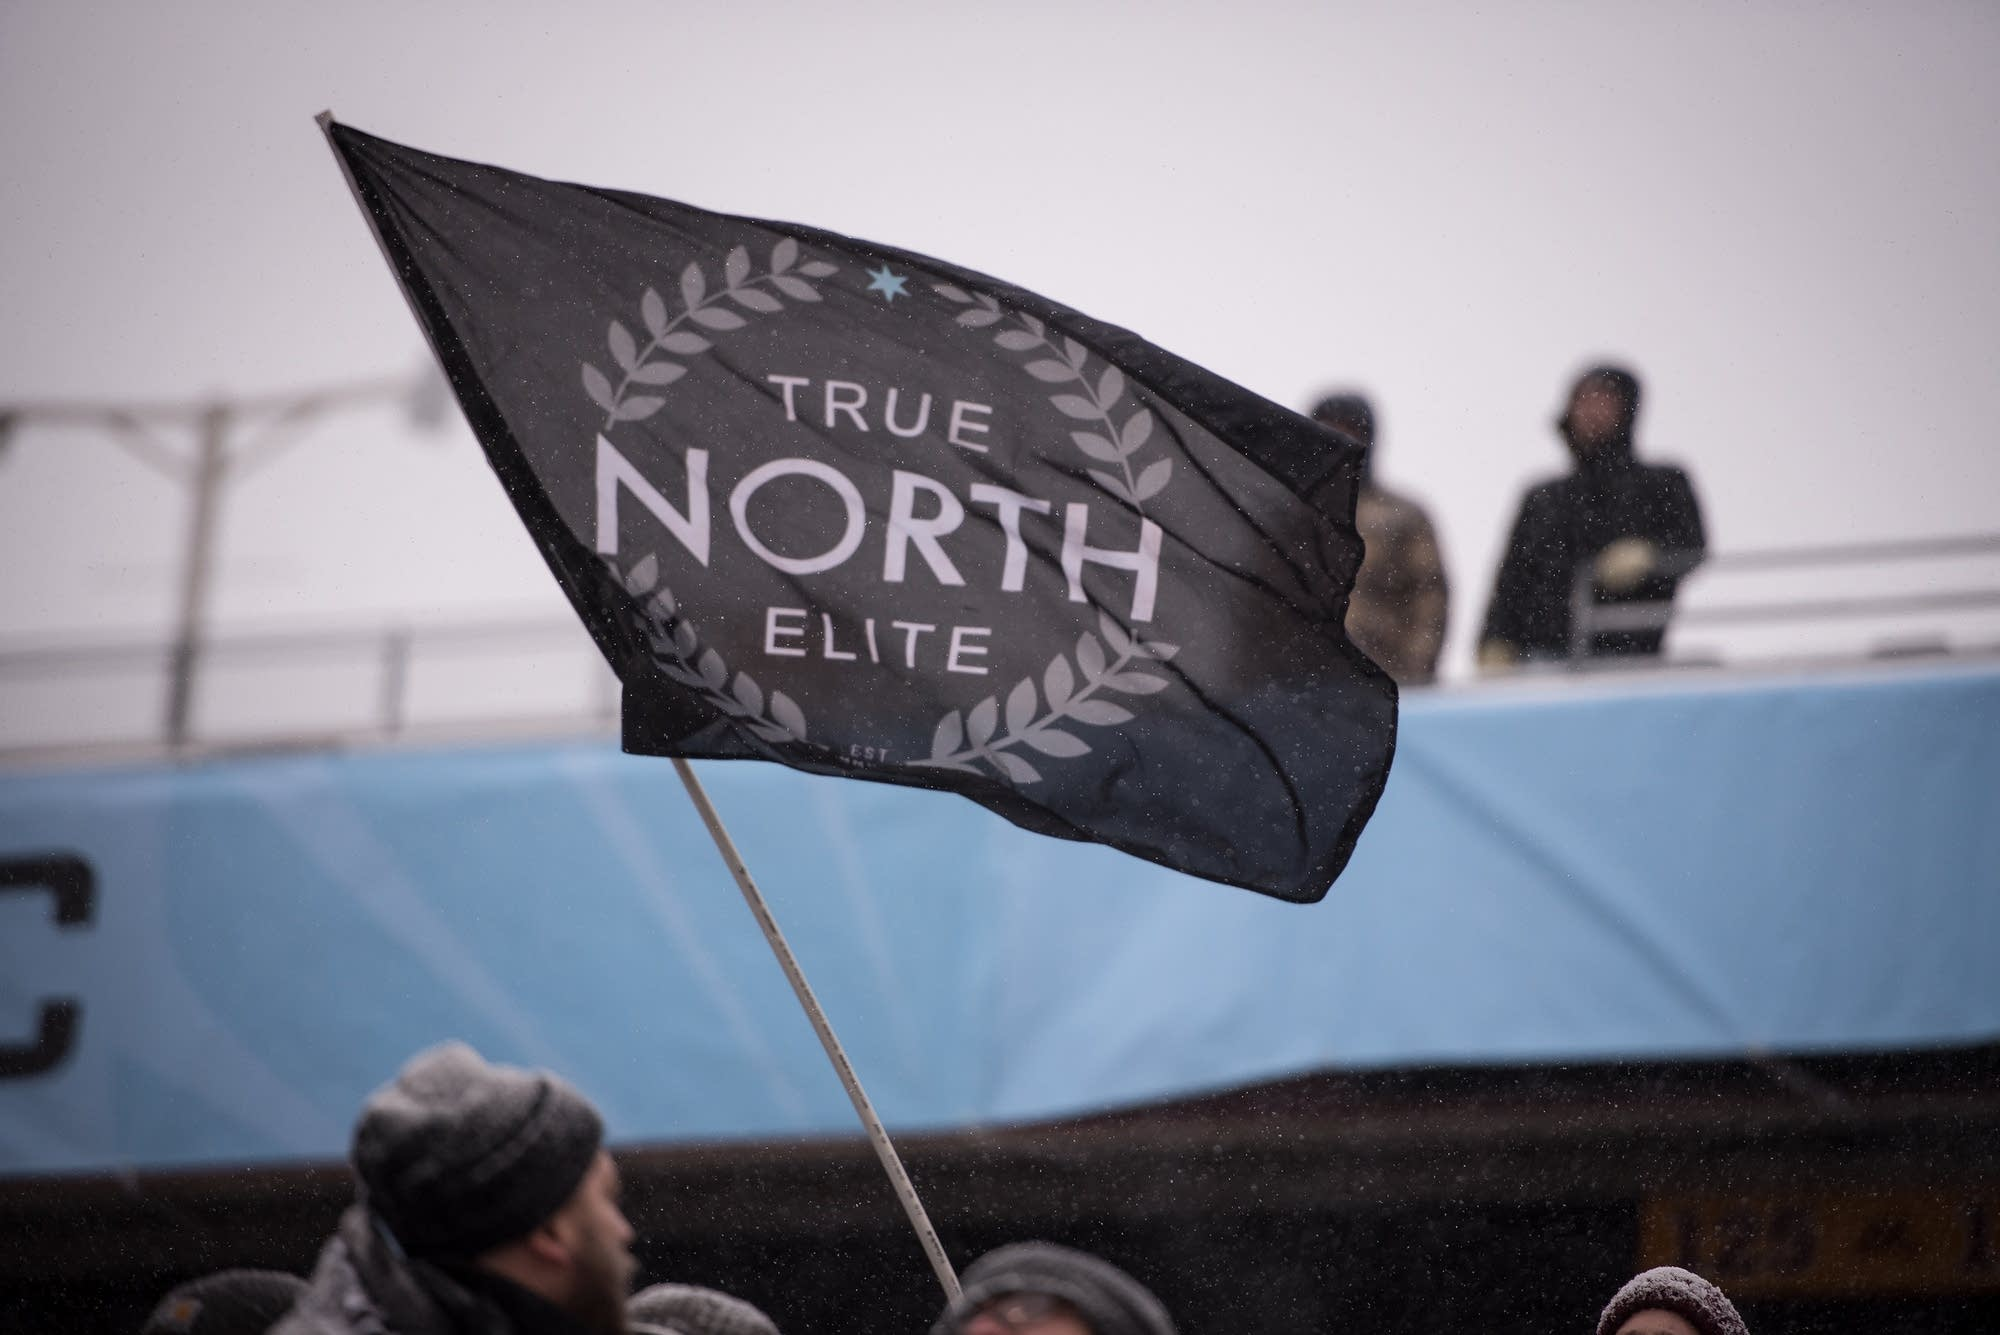 Fans brought 'True North' flags.